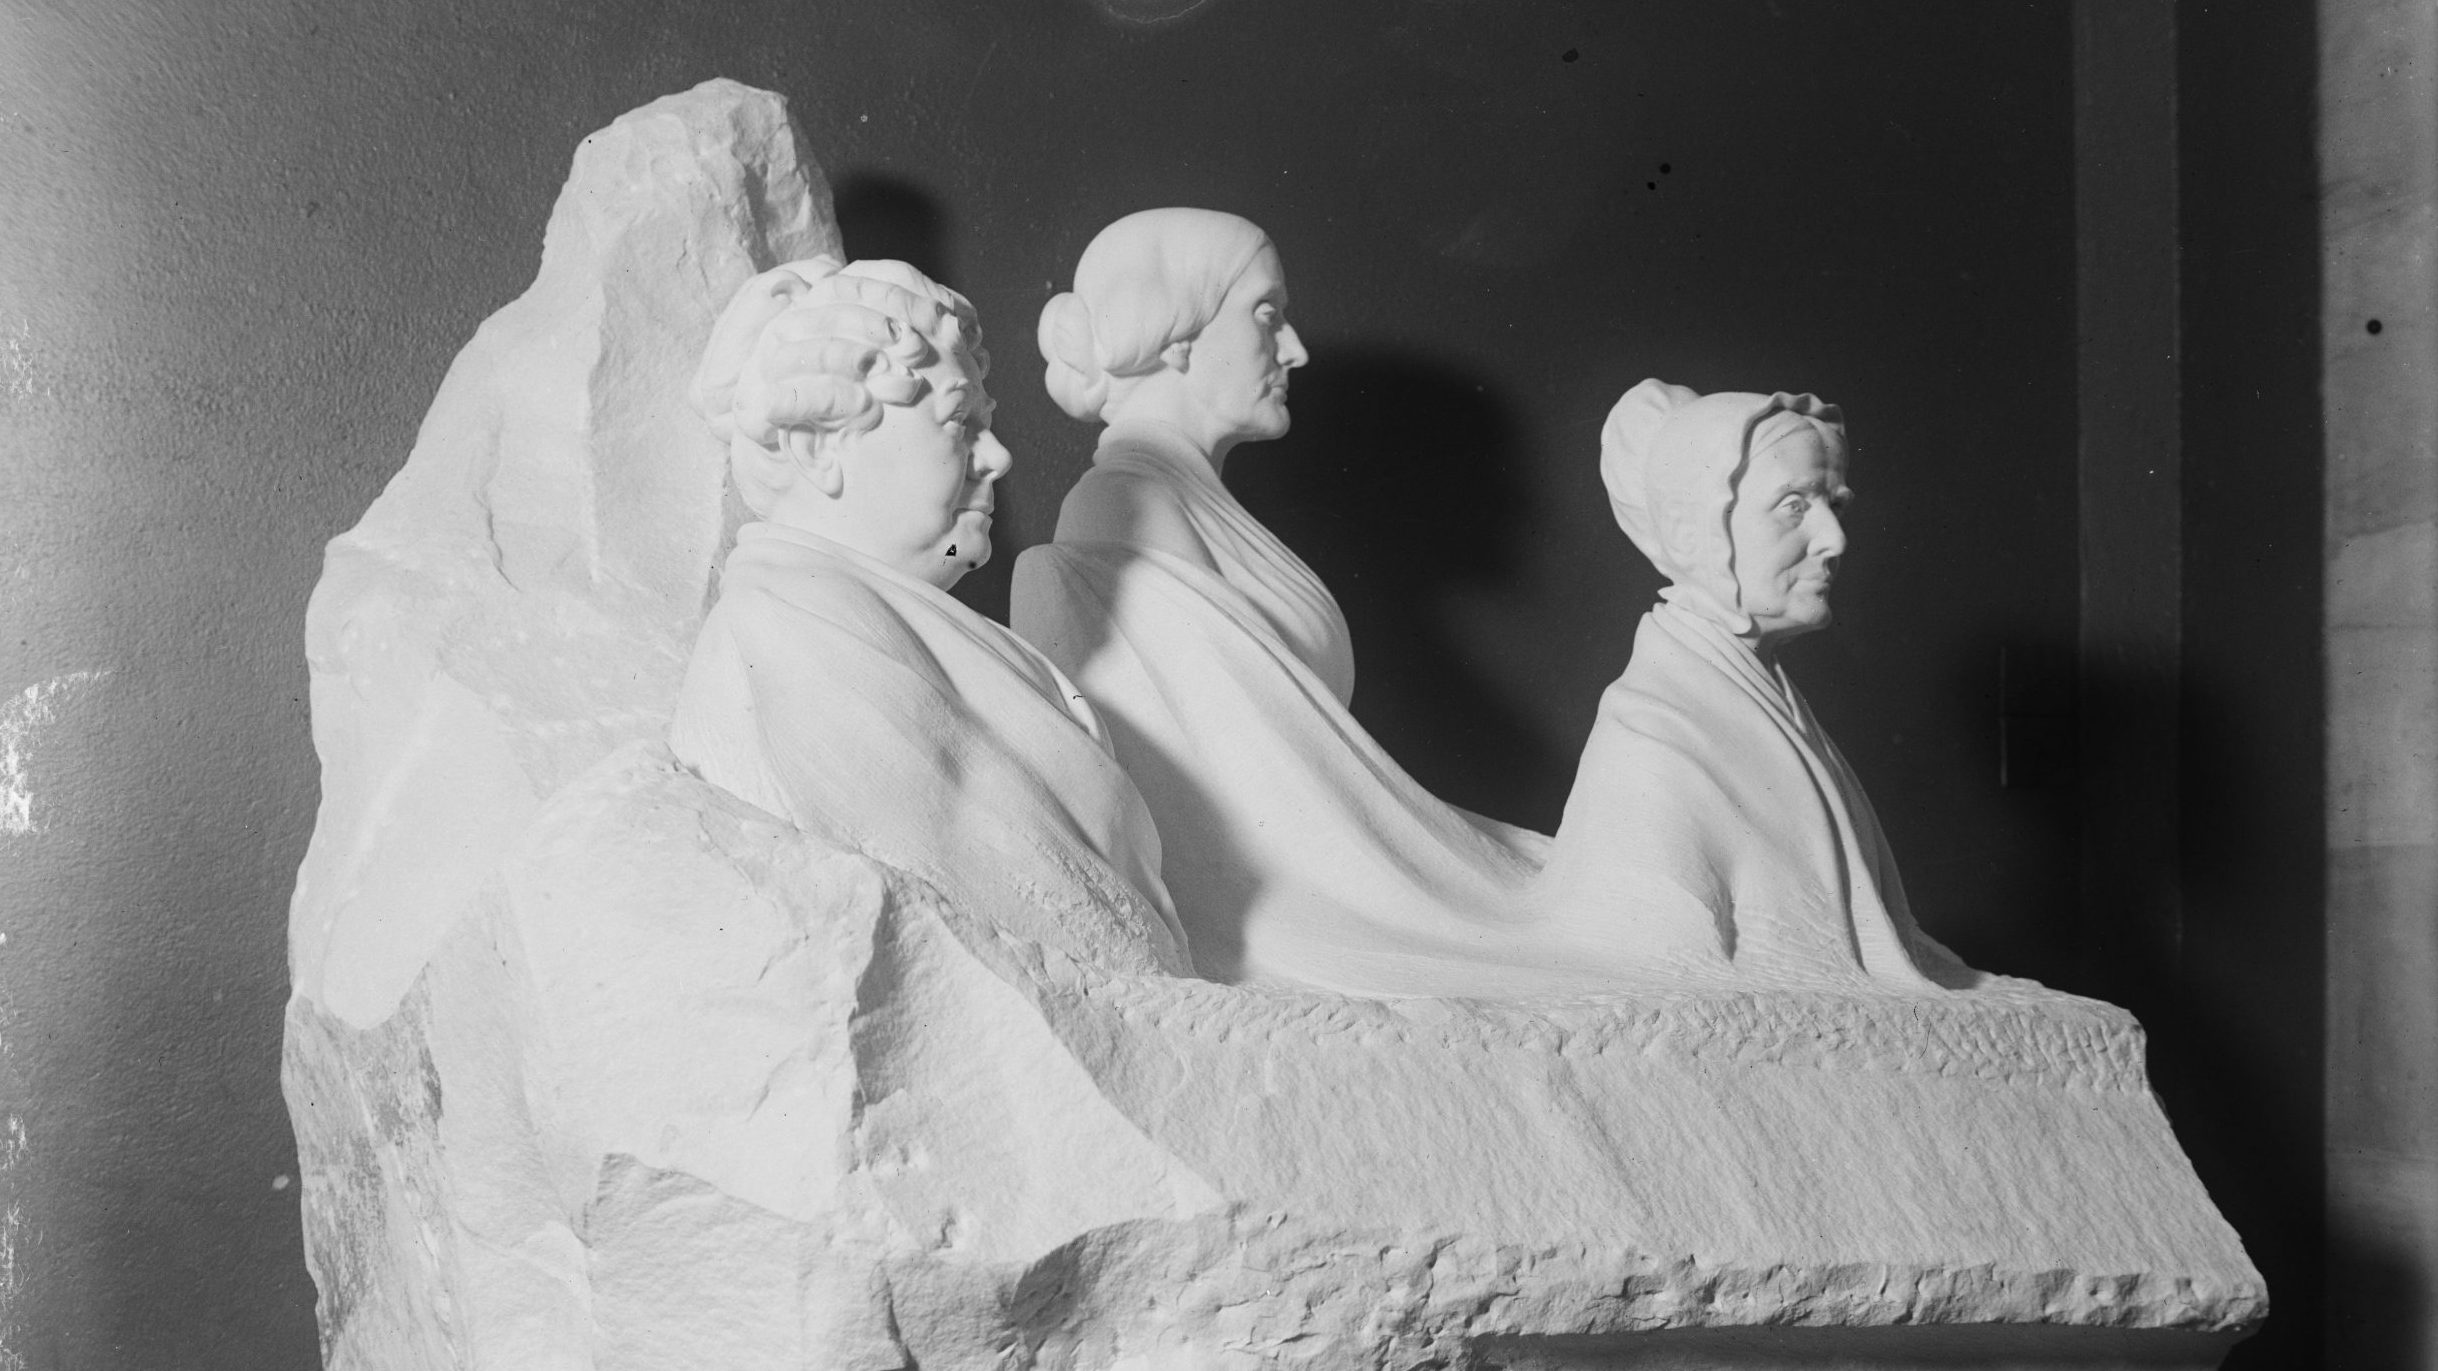 The statue of three suffragists installed in the Capitol Rotunda in the 1920s was swiftly hidden